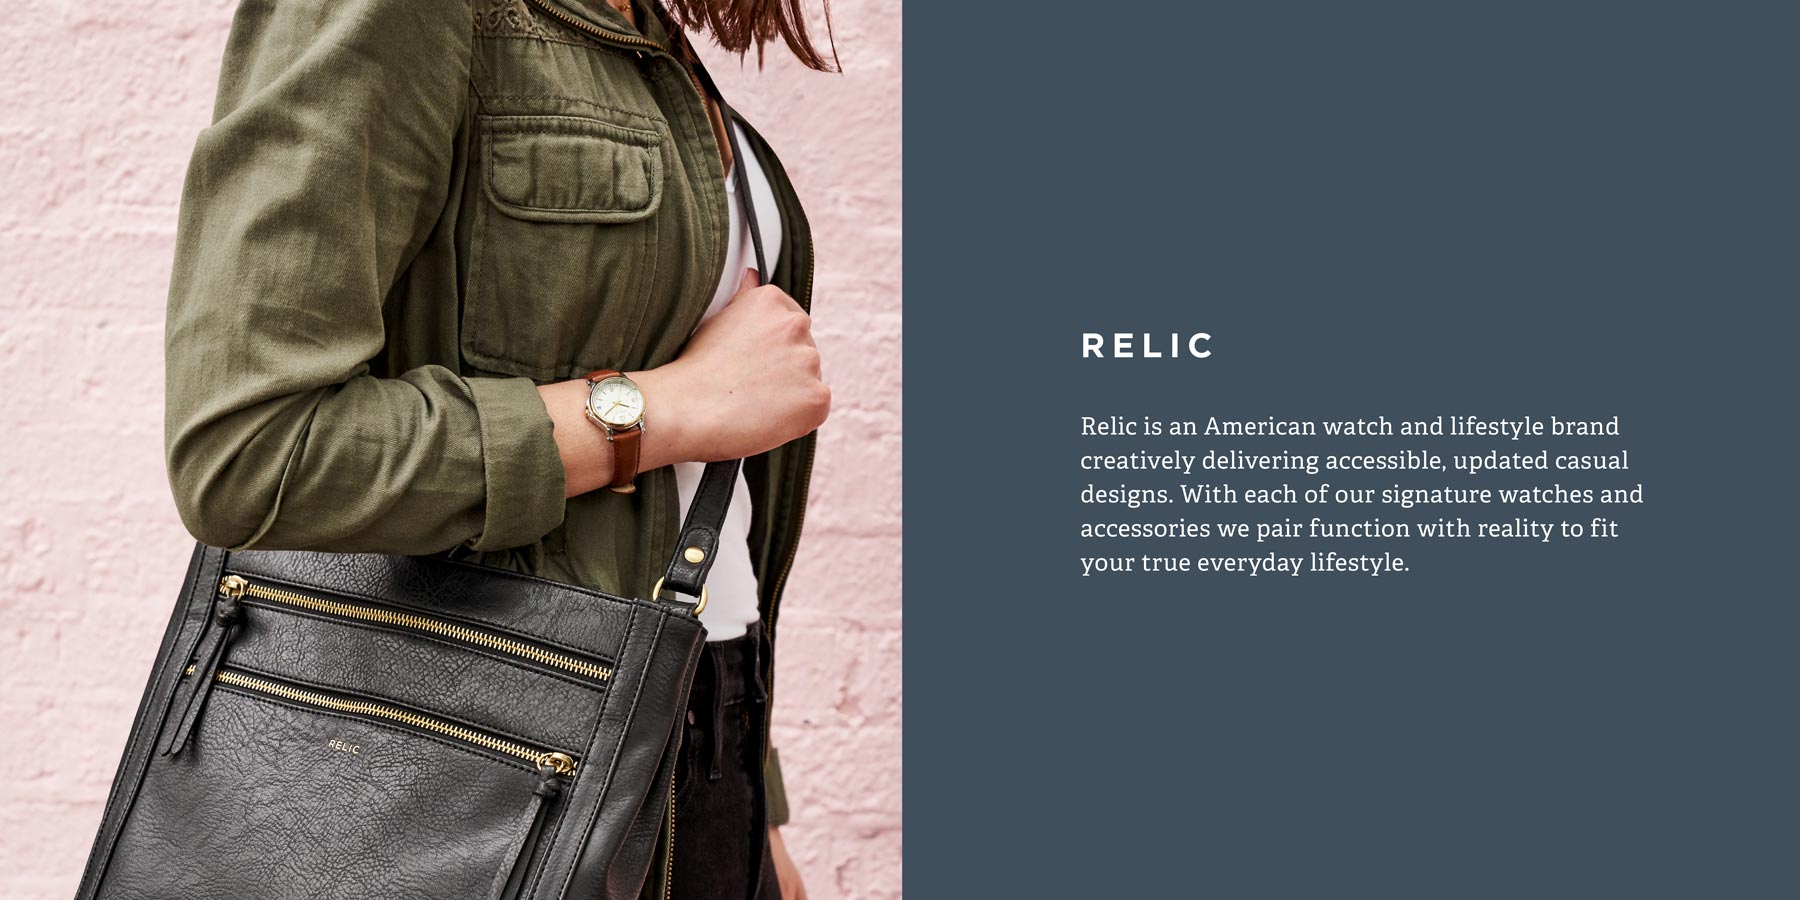 Relic is an American watch and lifestyle brand creatively delivering accessible, updated casual designs.